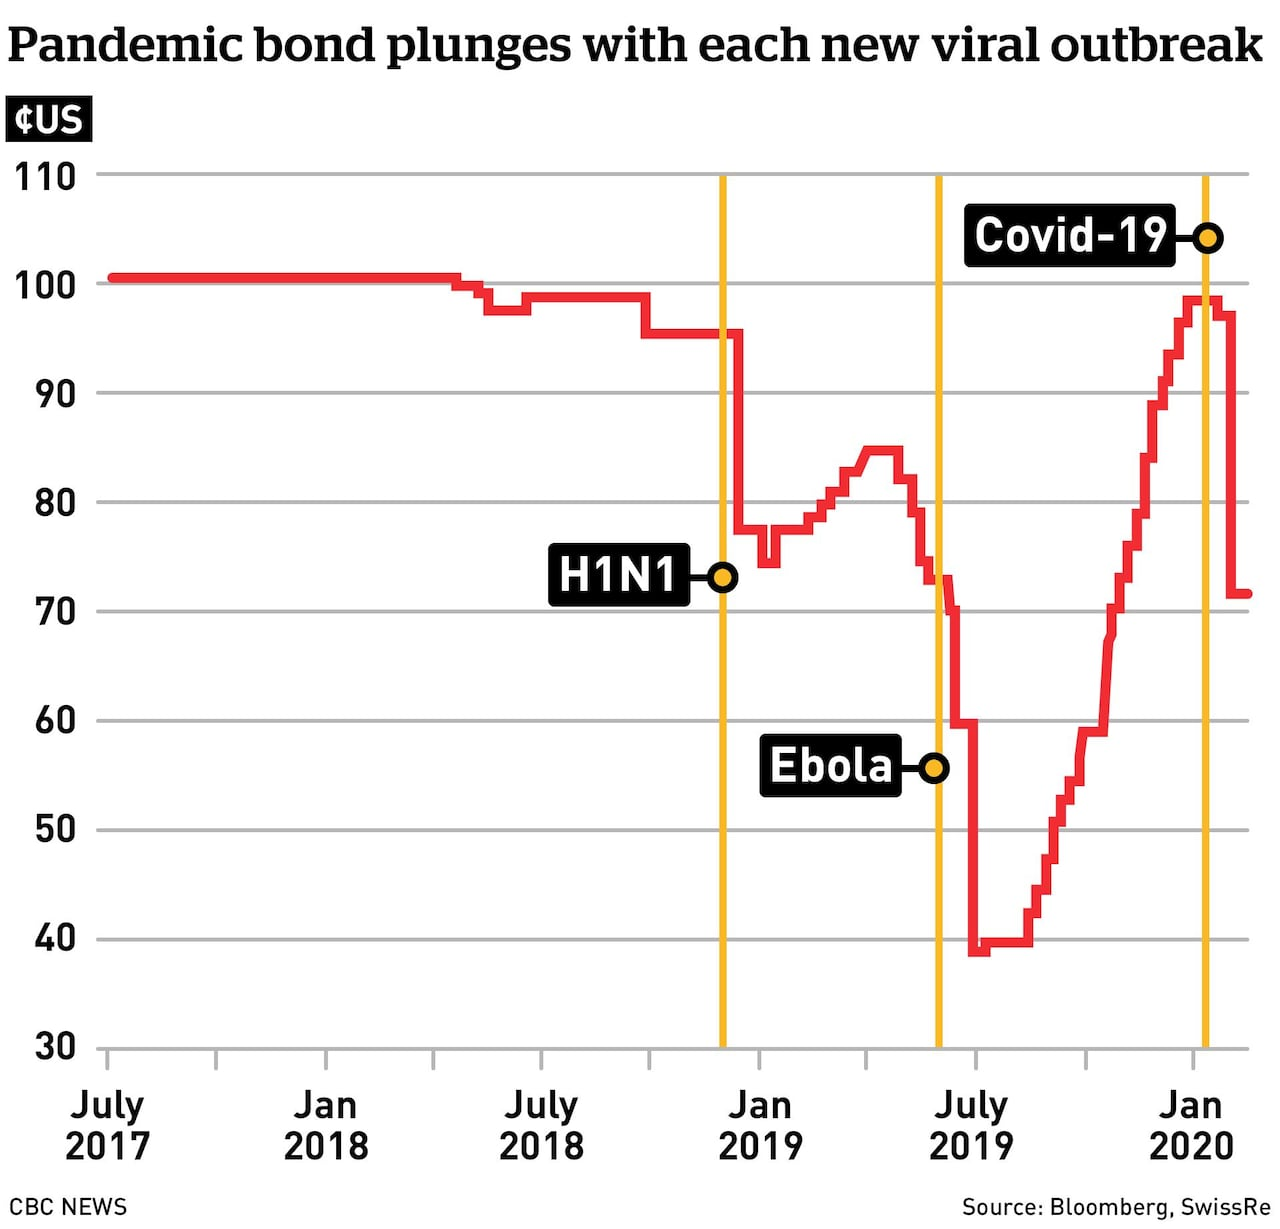 Coronavirus: Watch Out for March 23, 2020